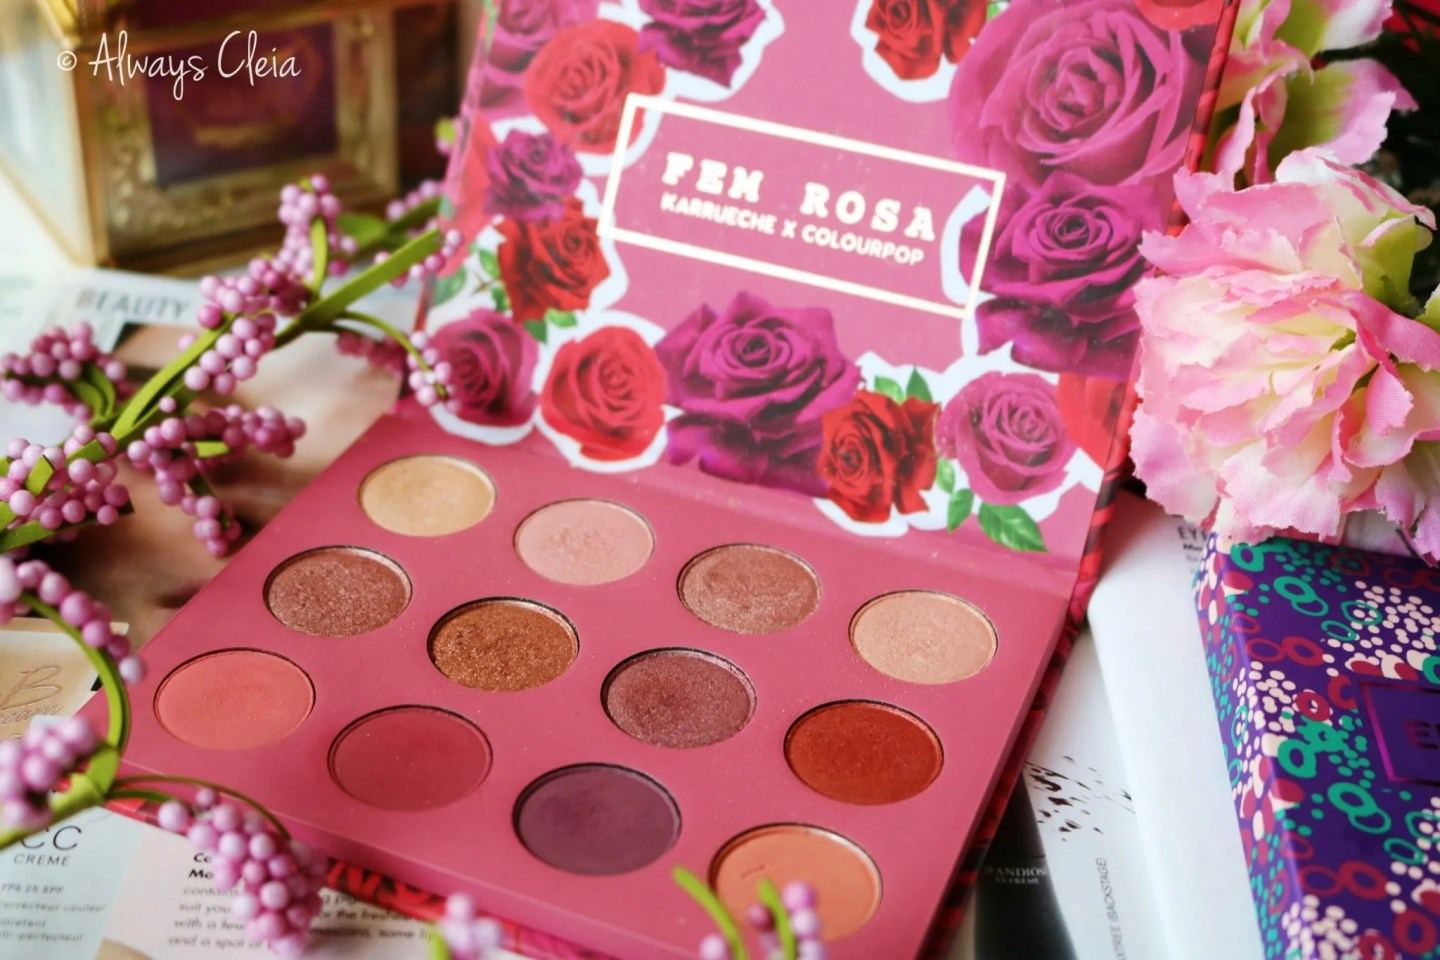 Karrueche ColourPop She Palette Review